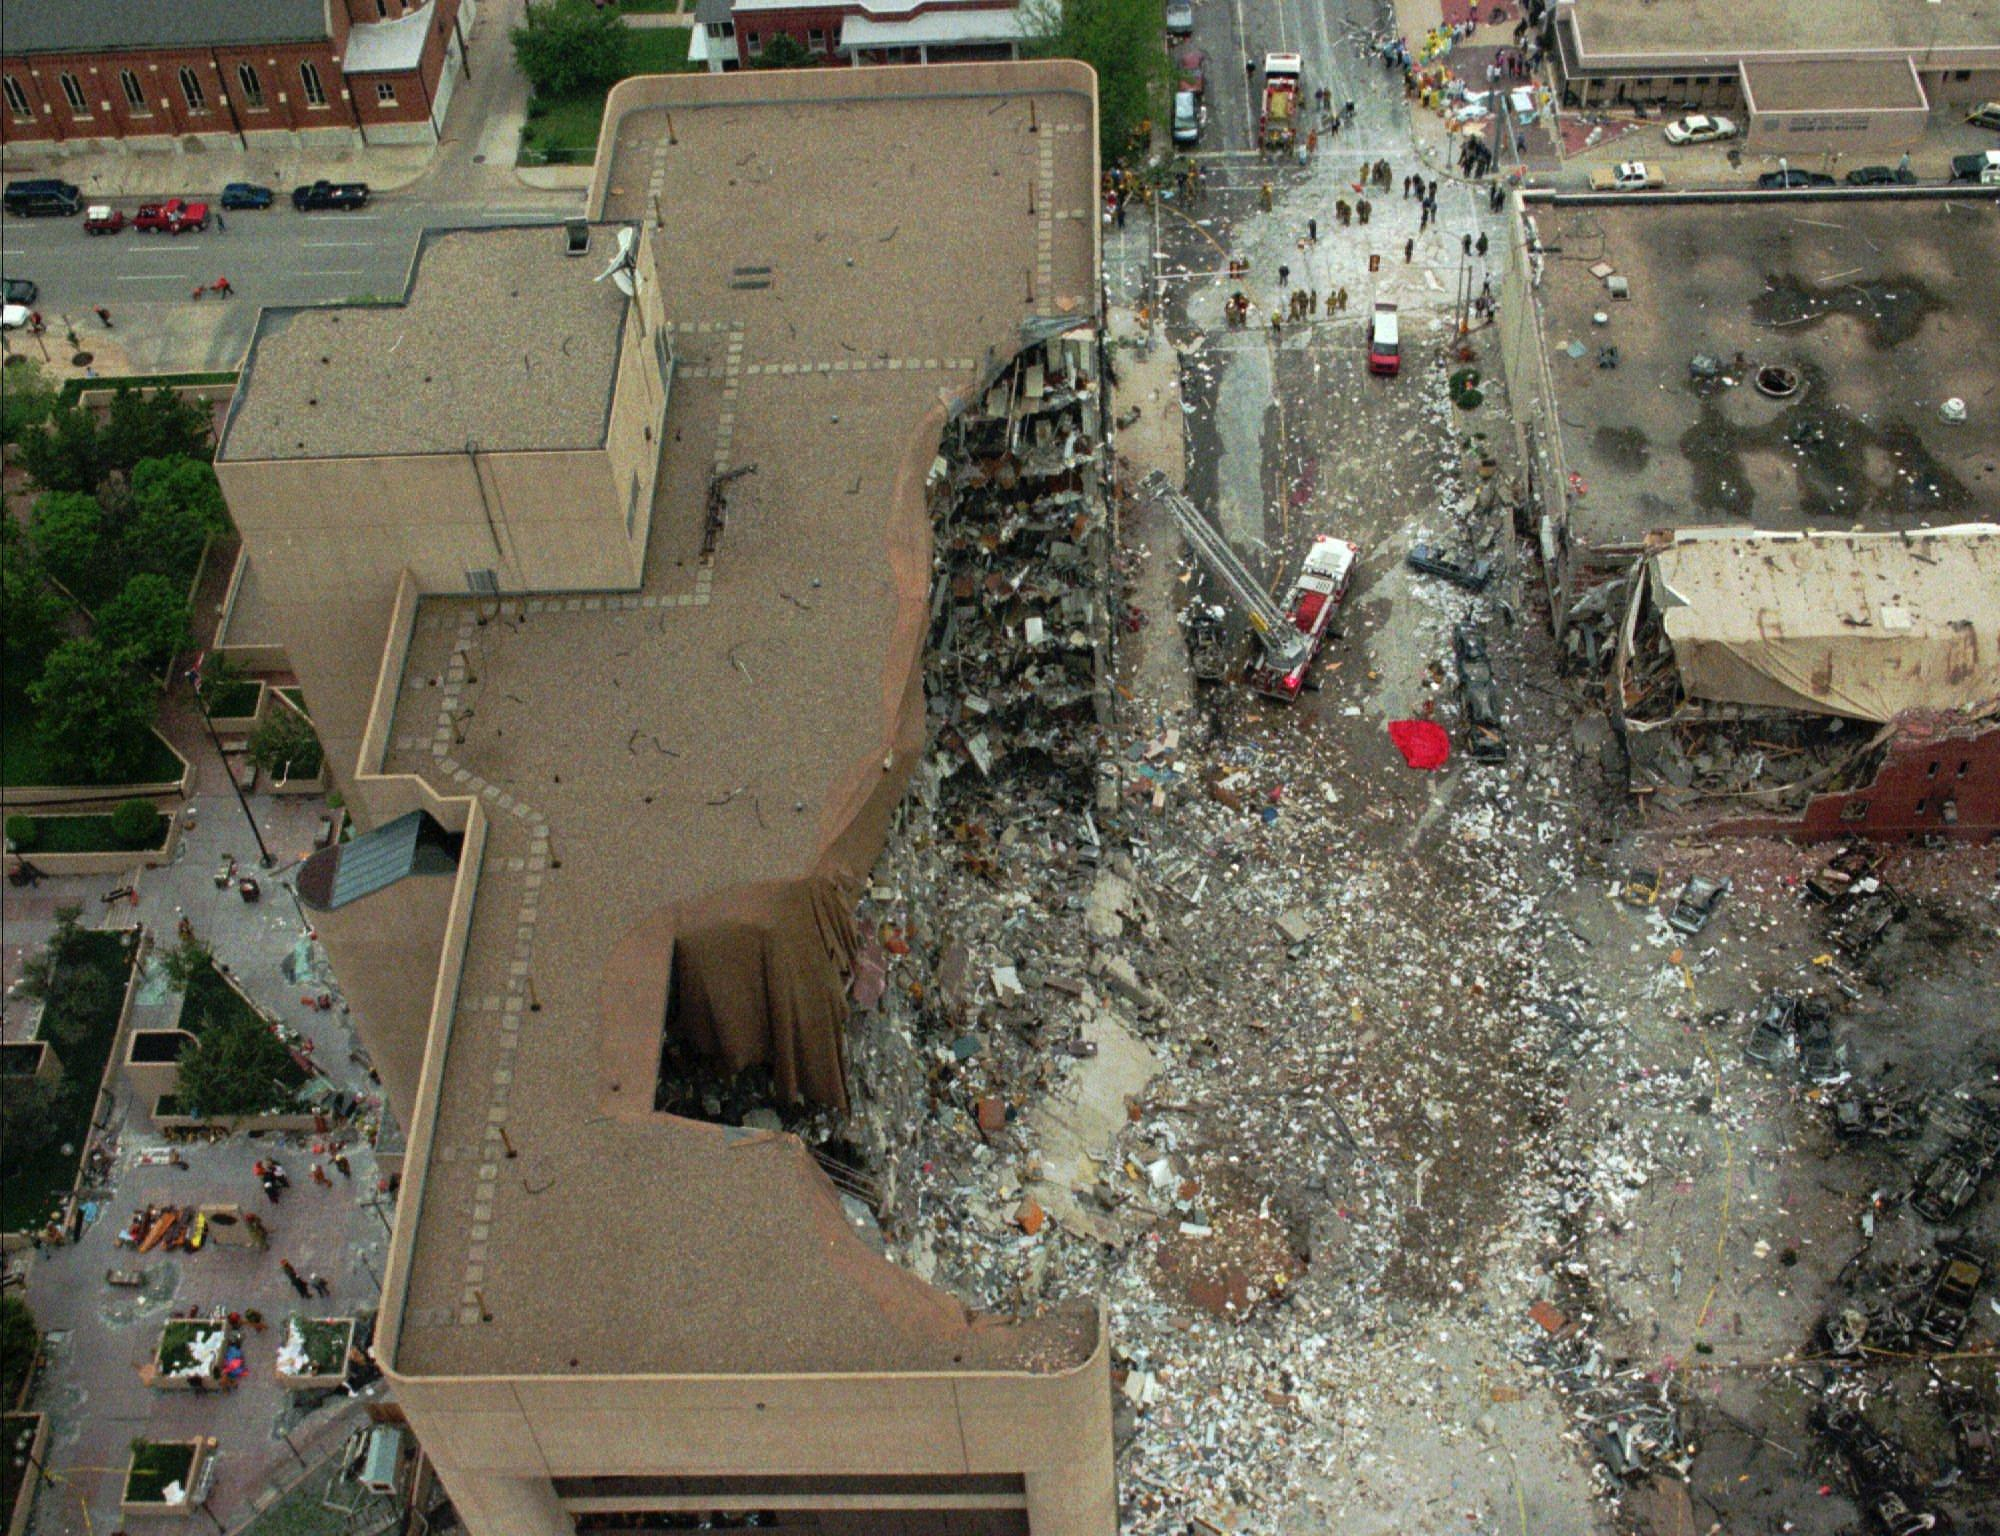 okc murrah building bombing This year marks the 20th anniversary of the terrorist bombing of the murrah federal building in oklahoma city, which killed 168 people including 19 children the mainstream media will undoubtedly focus its attention on timothy mcveigh, who was put to death in june 2001 for his part in the crime.